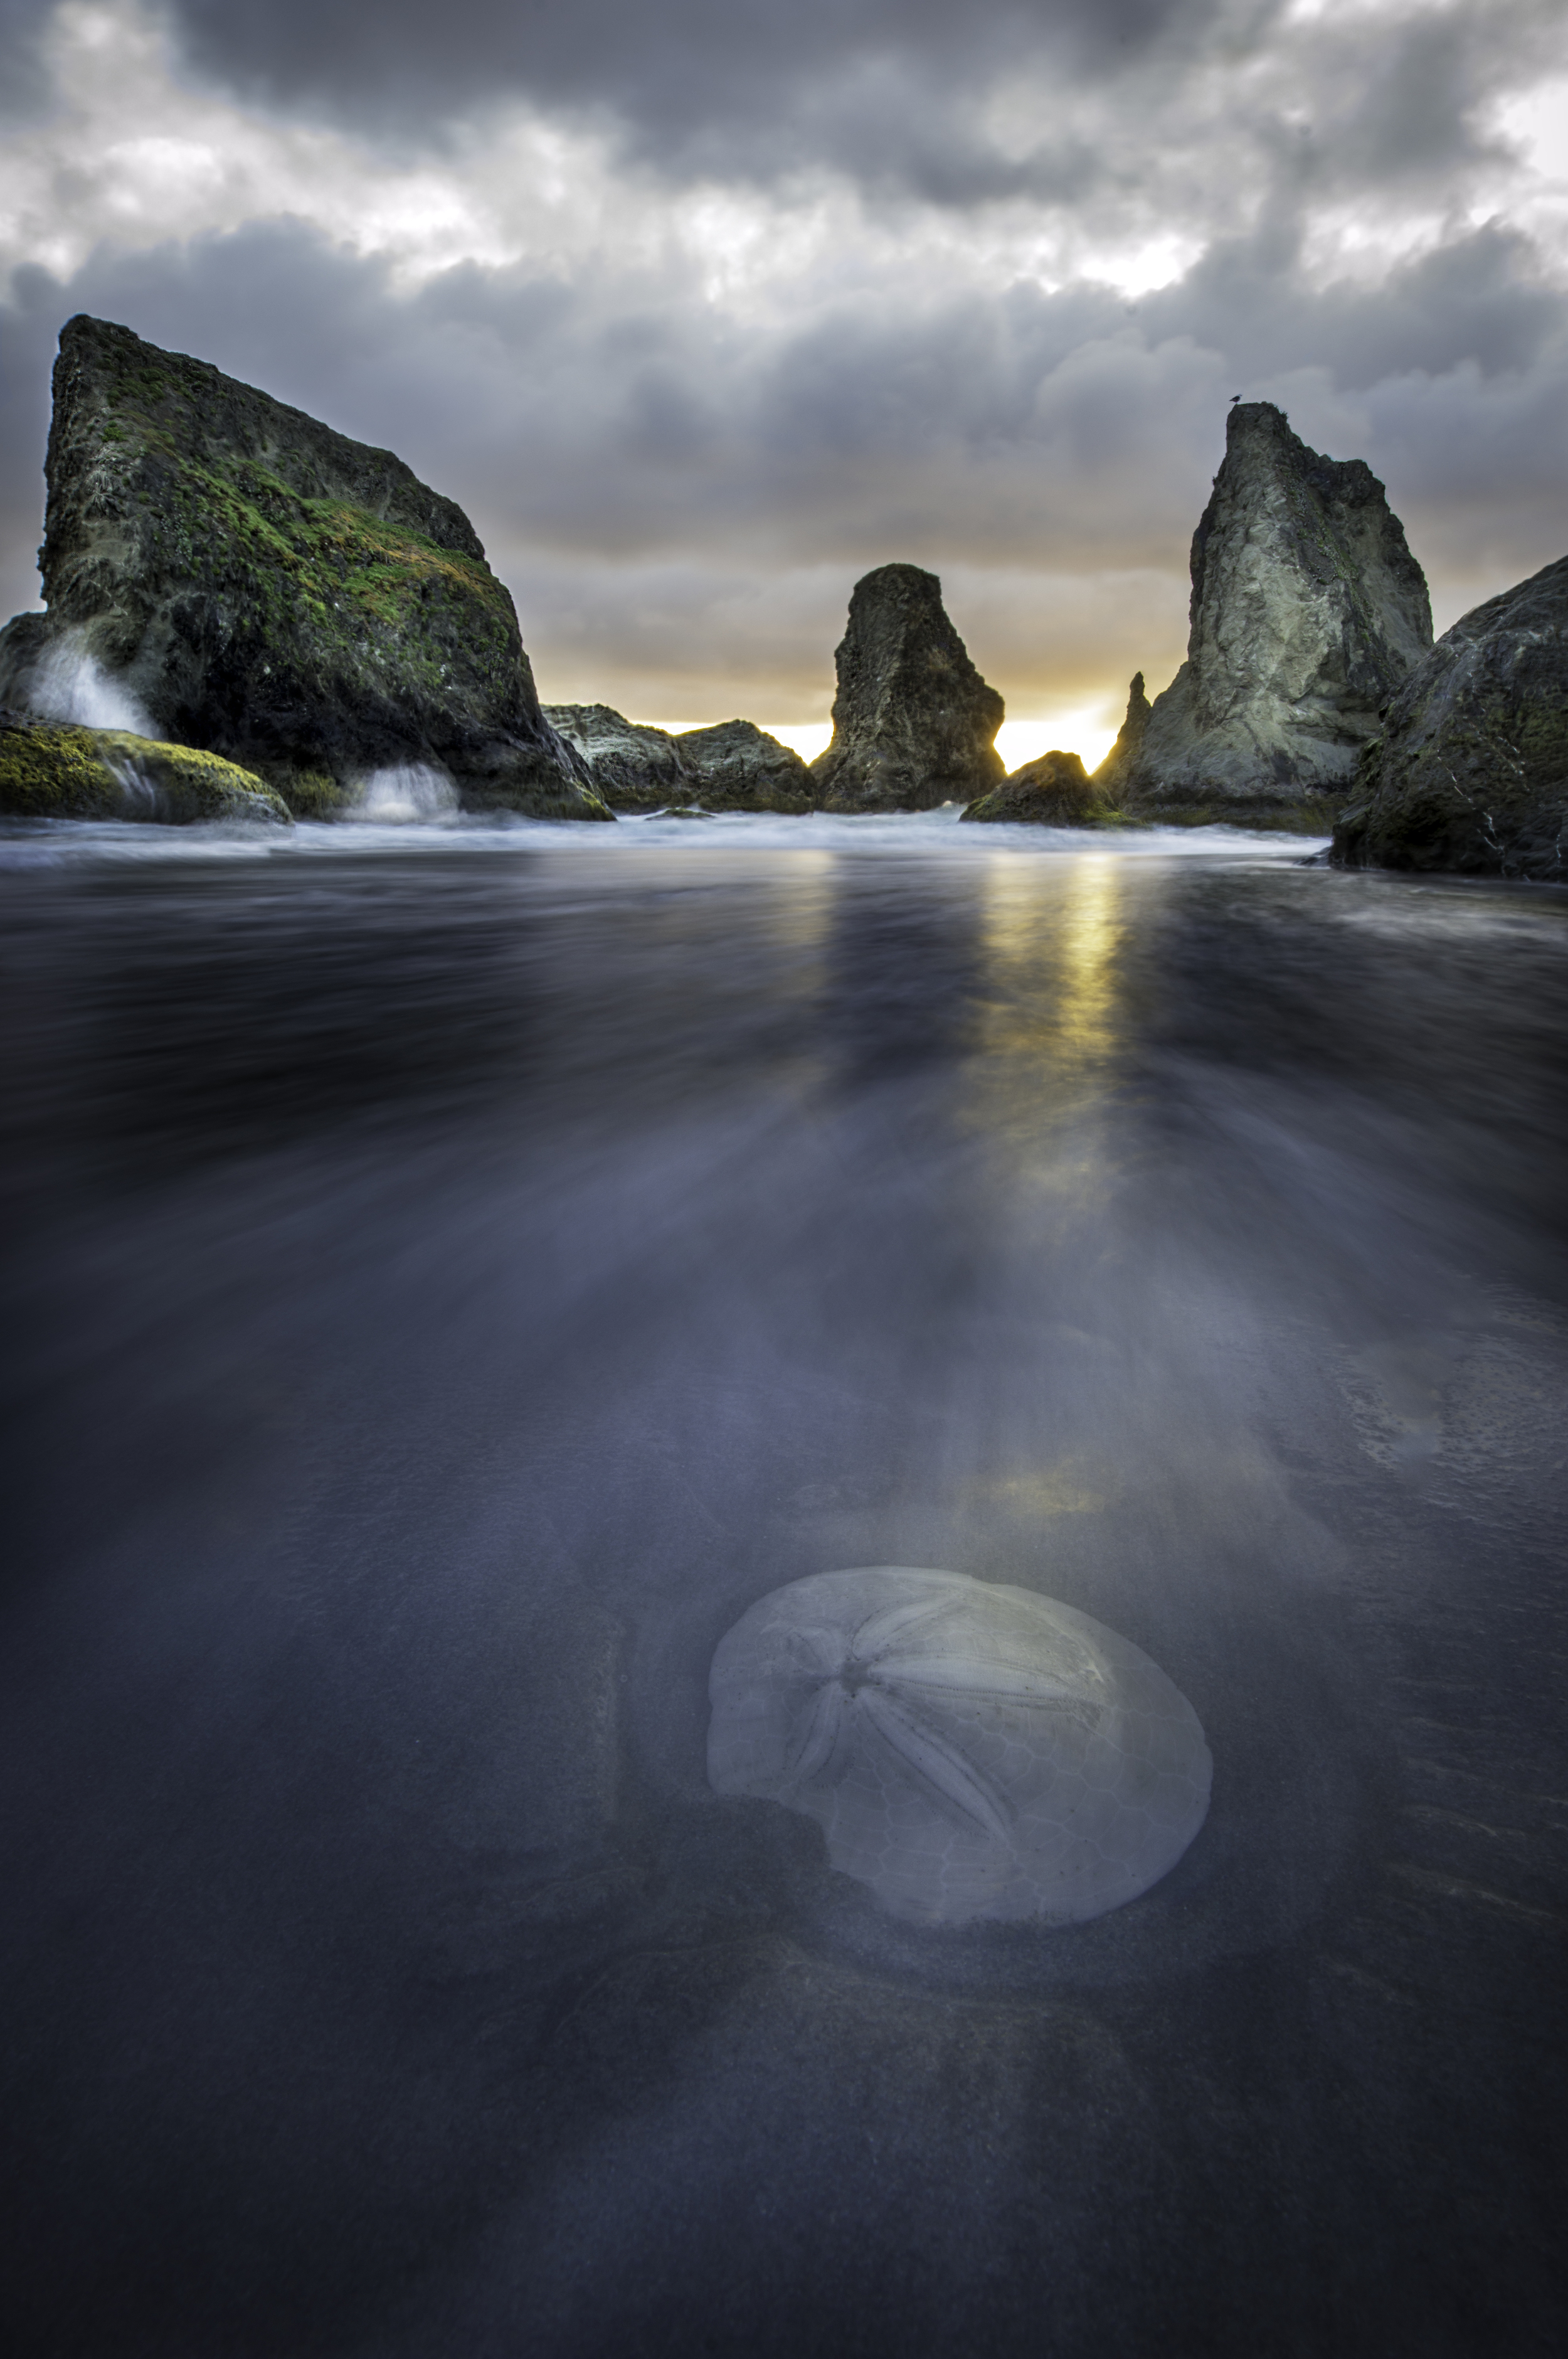 Water rushes over a sand dollar in Bandon, OR